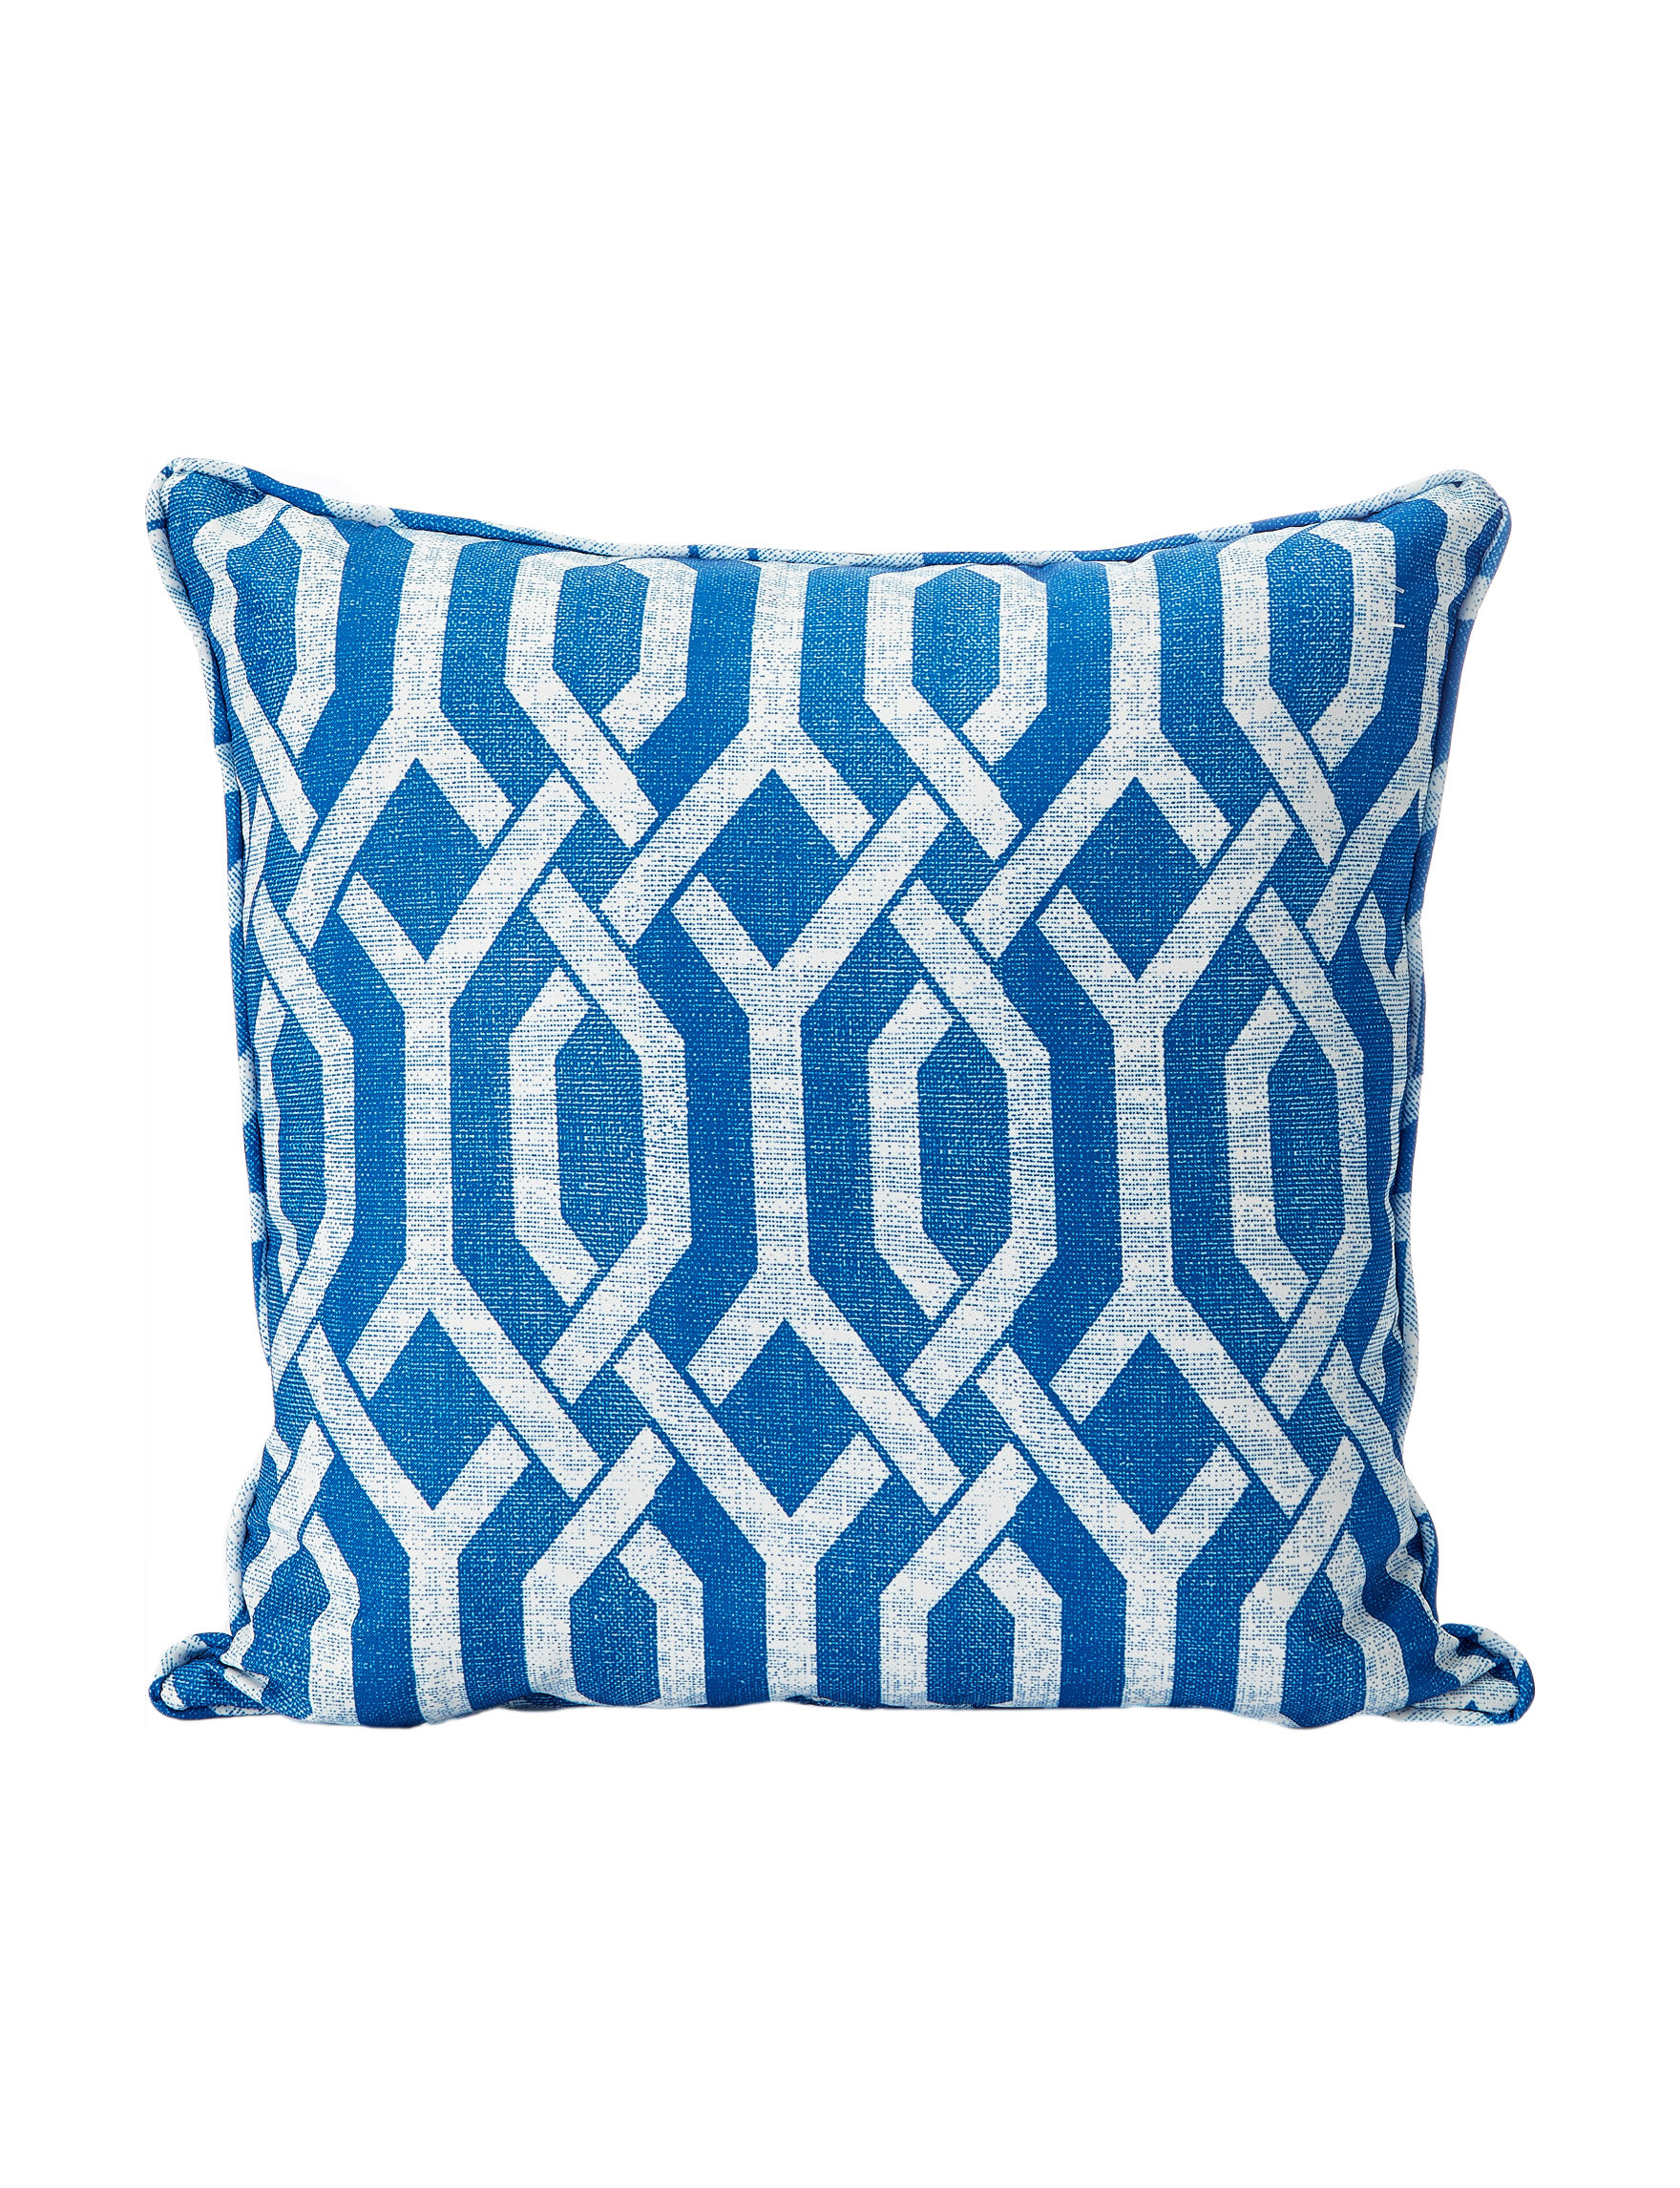 Home Fashions International Blue / Beige Outdoor Decor